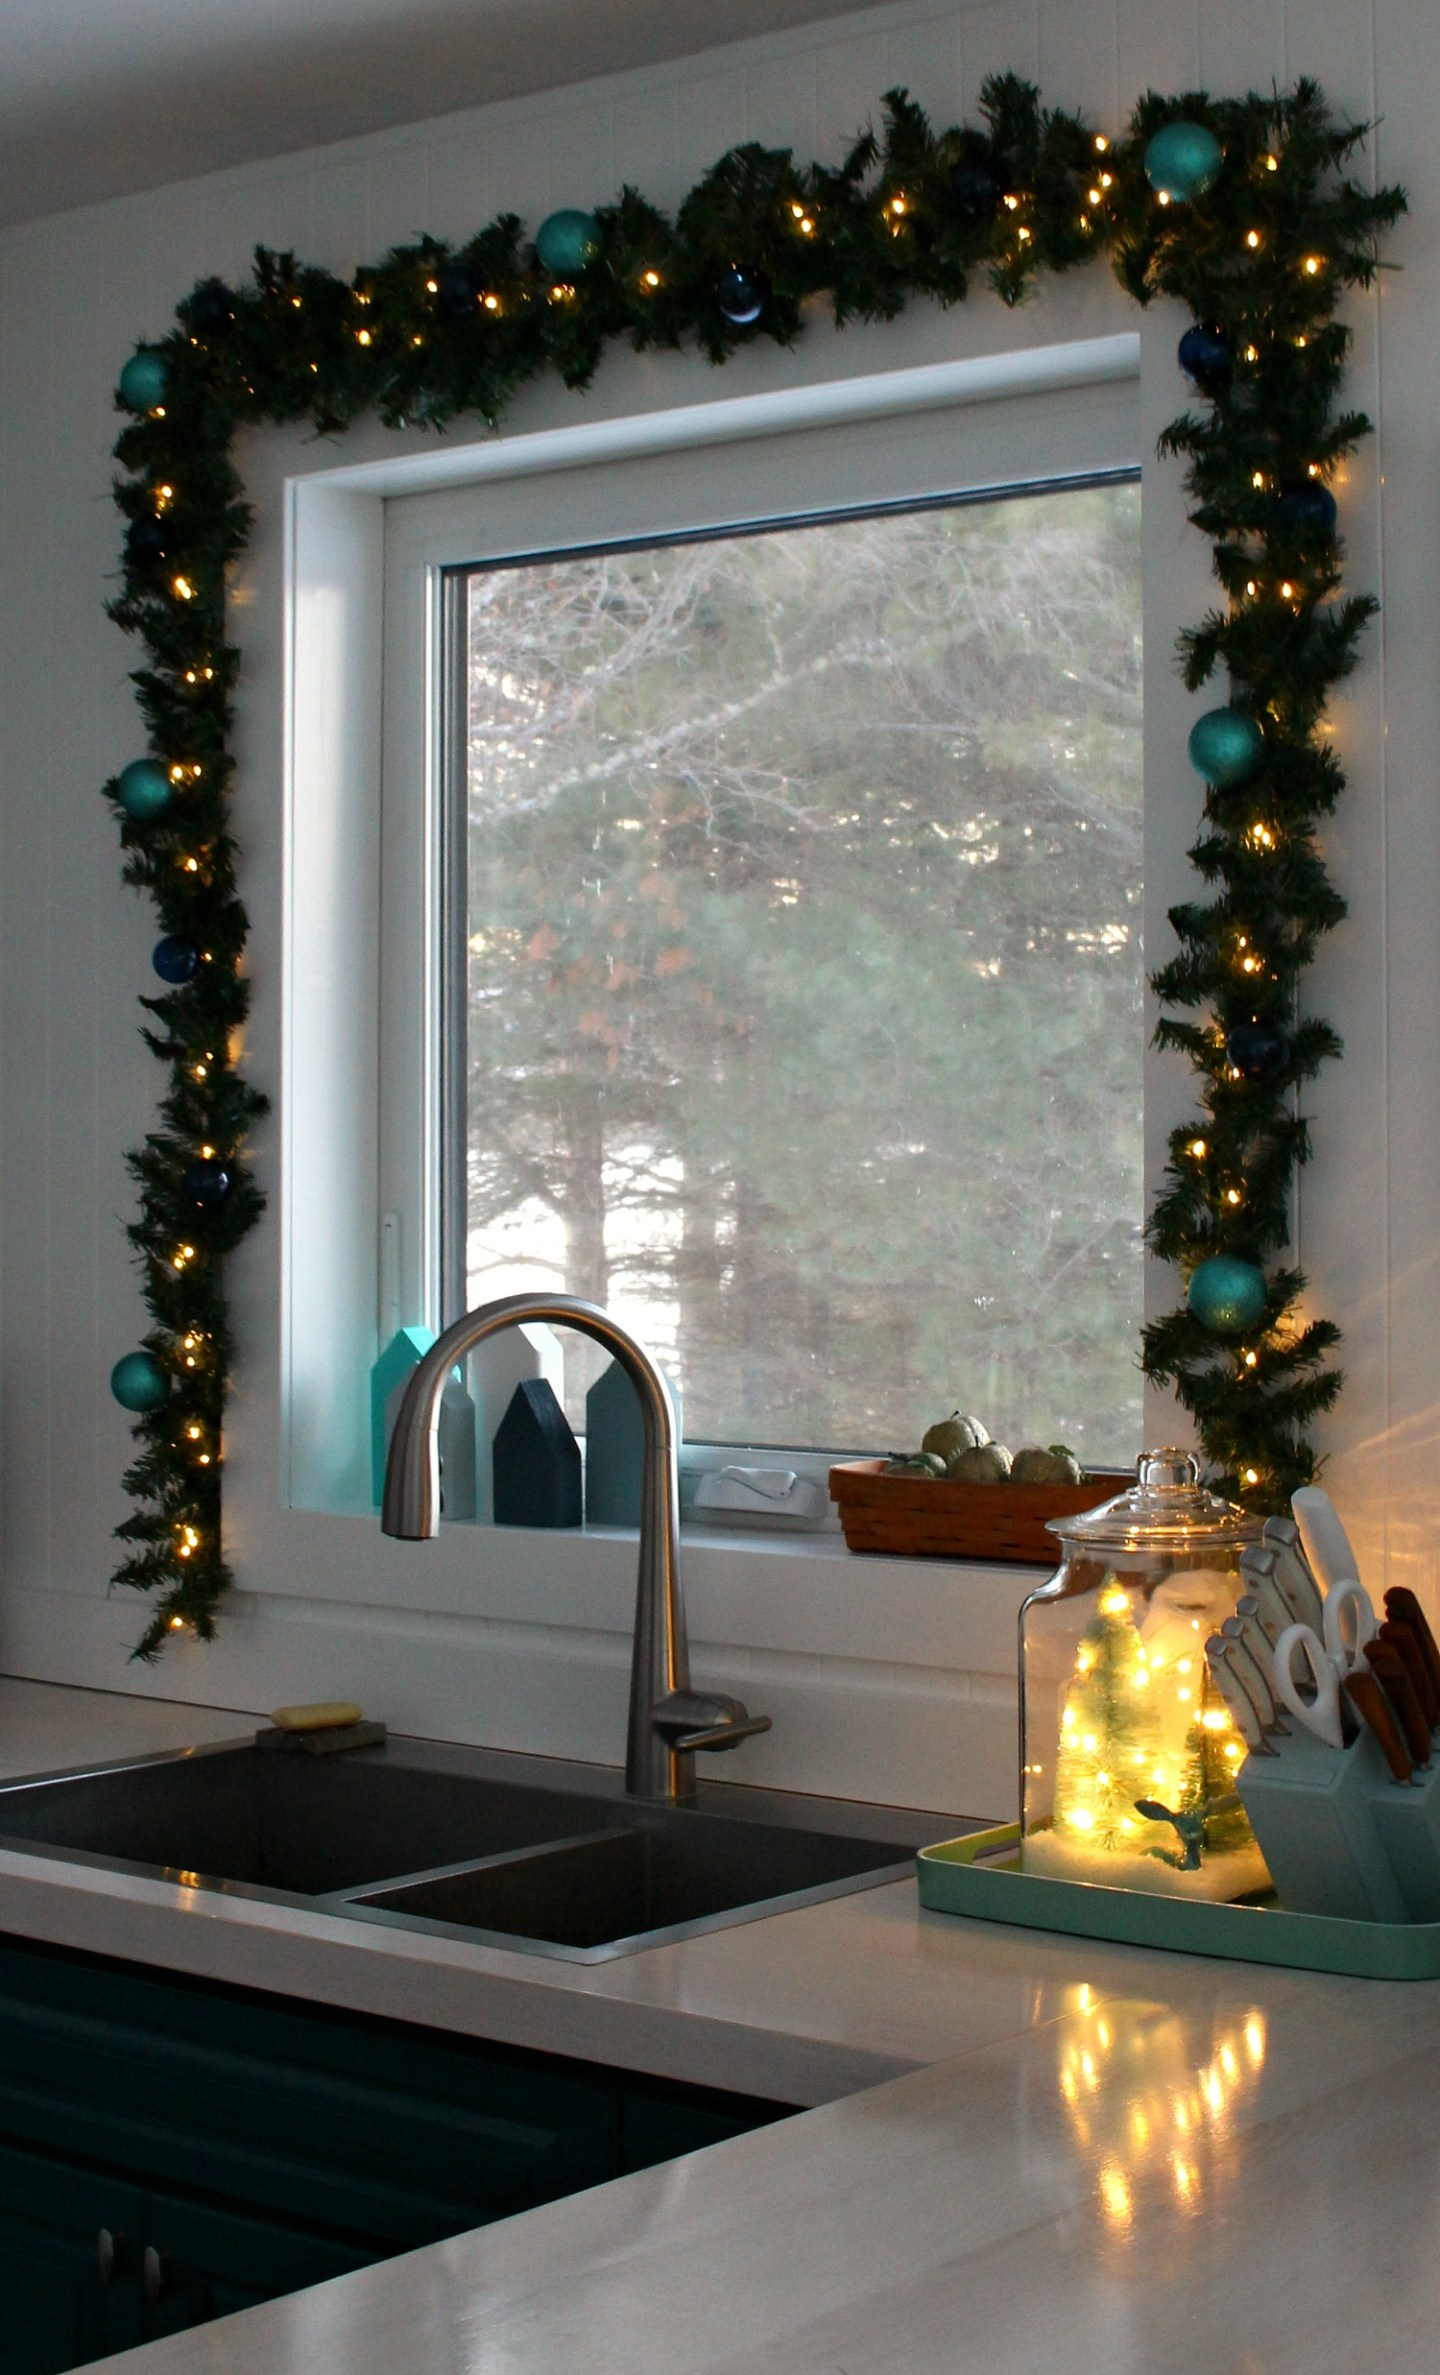 Upcycled Holiday Decor Idea